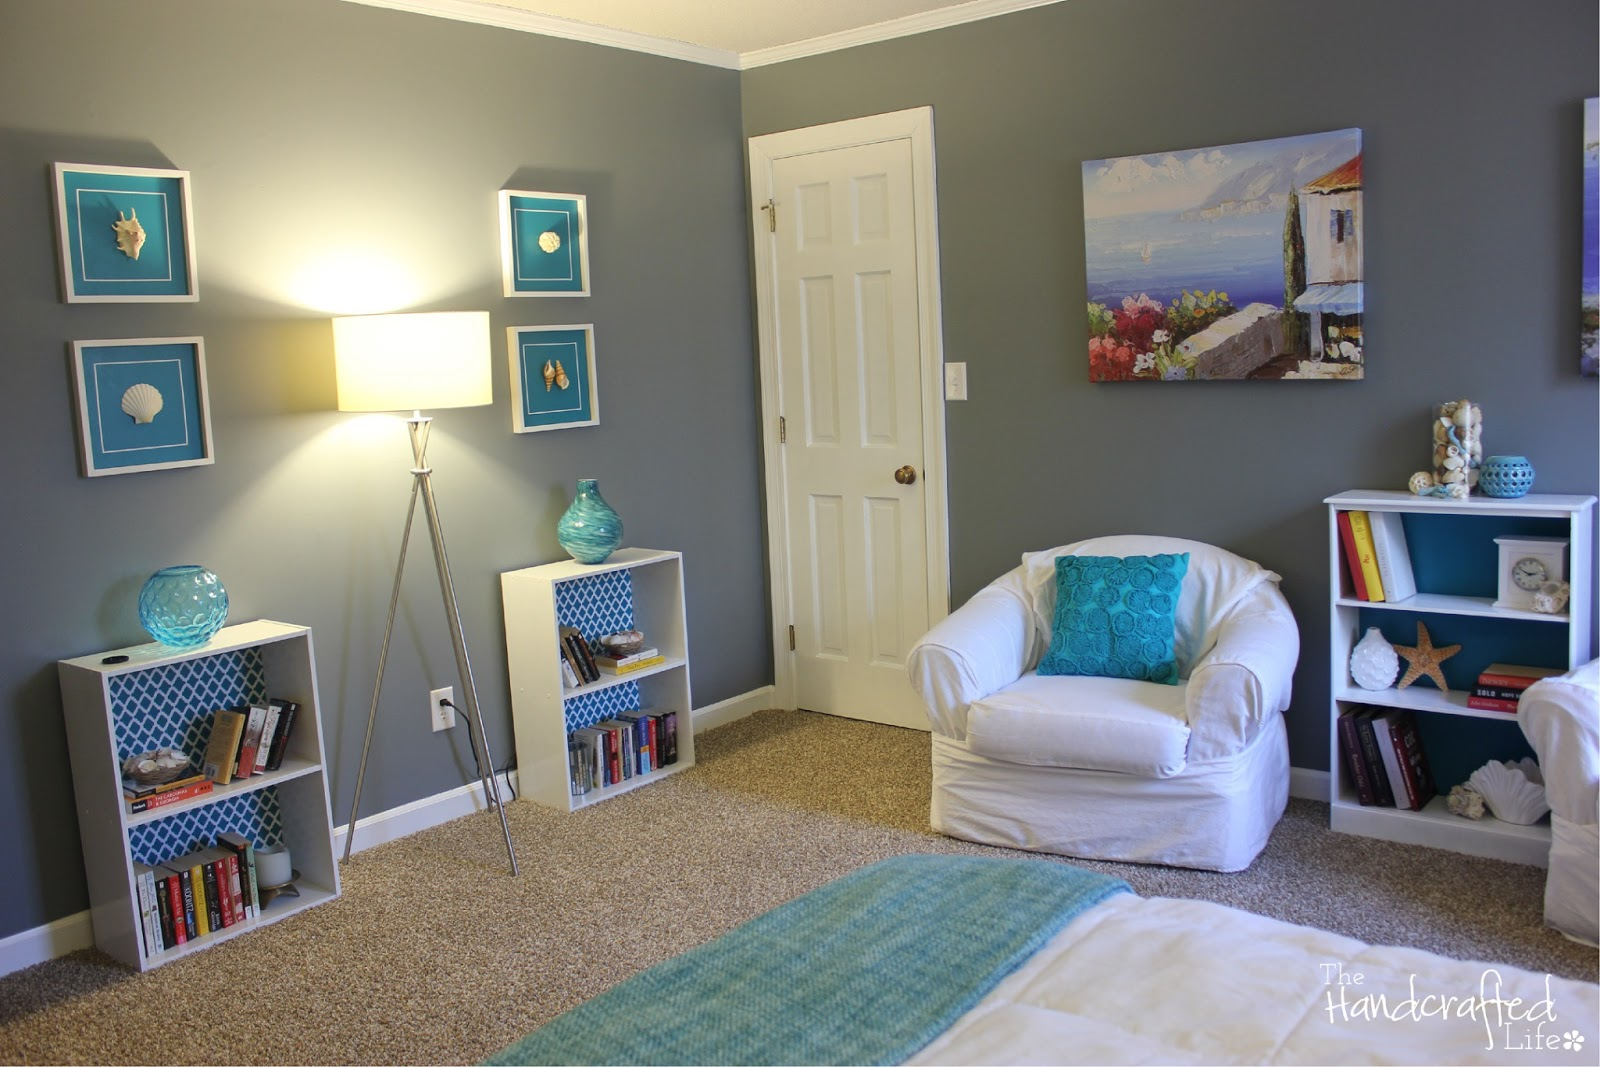 Teal Pictures Bedroom The Handcrafted Life Teal White And Grey Guest Bedroom Reveal